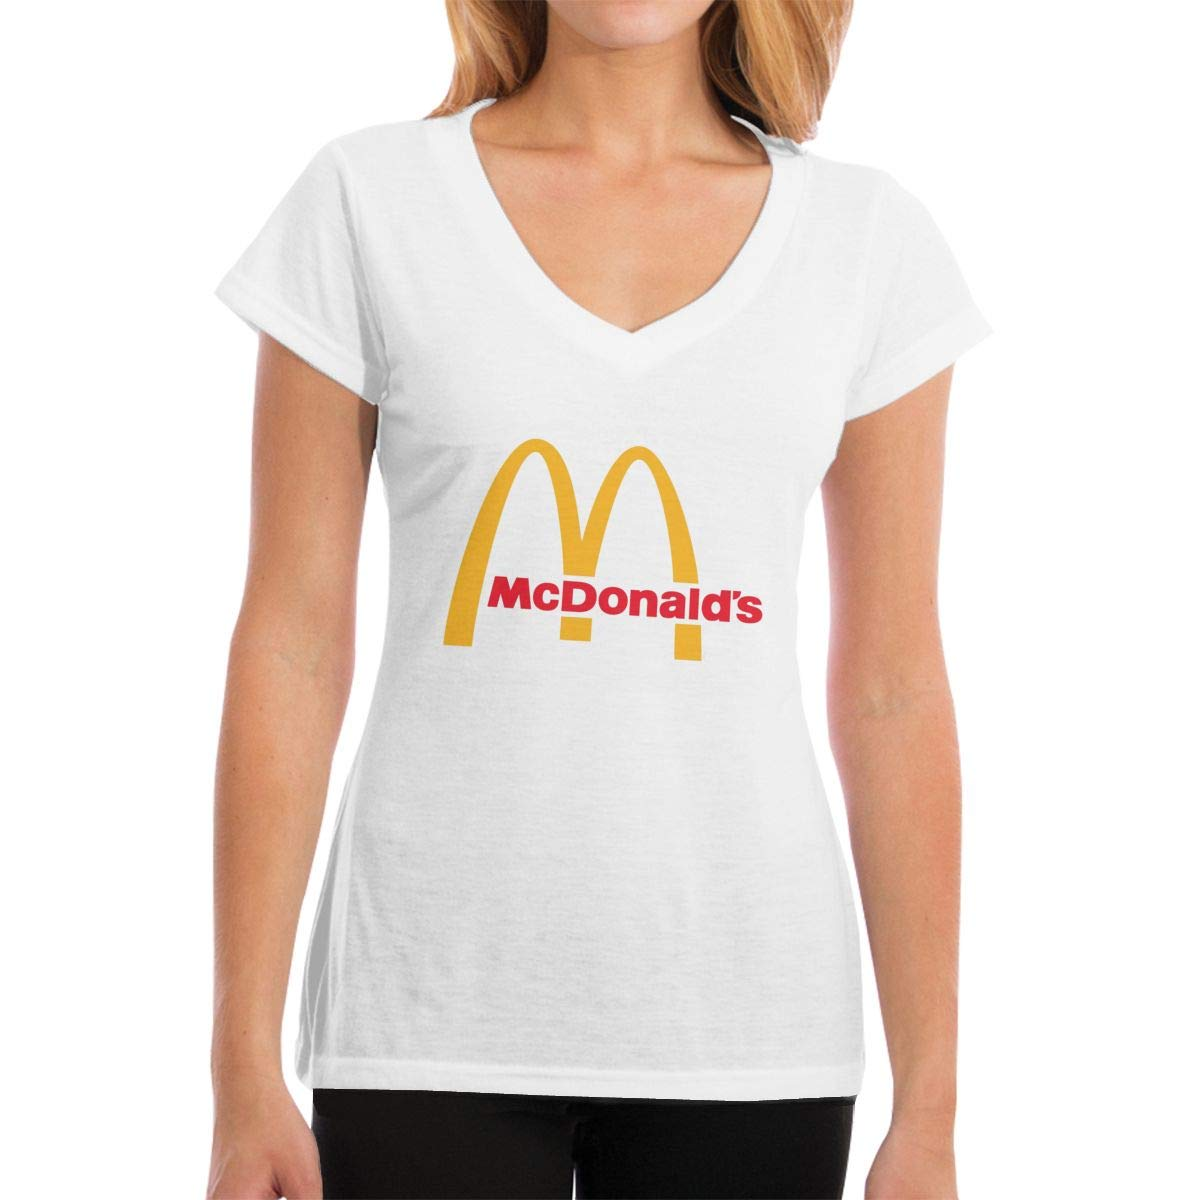 Lakssn Women's Youth Girls McDonalds Logo Tee Shirts Short Sleeve T Shirt for Women Girls T-Shirt Round Neck Cotton Tshirt White XXL by Lakssn